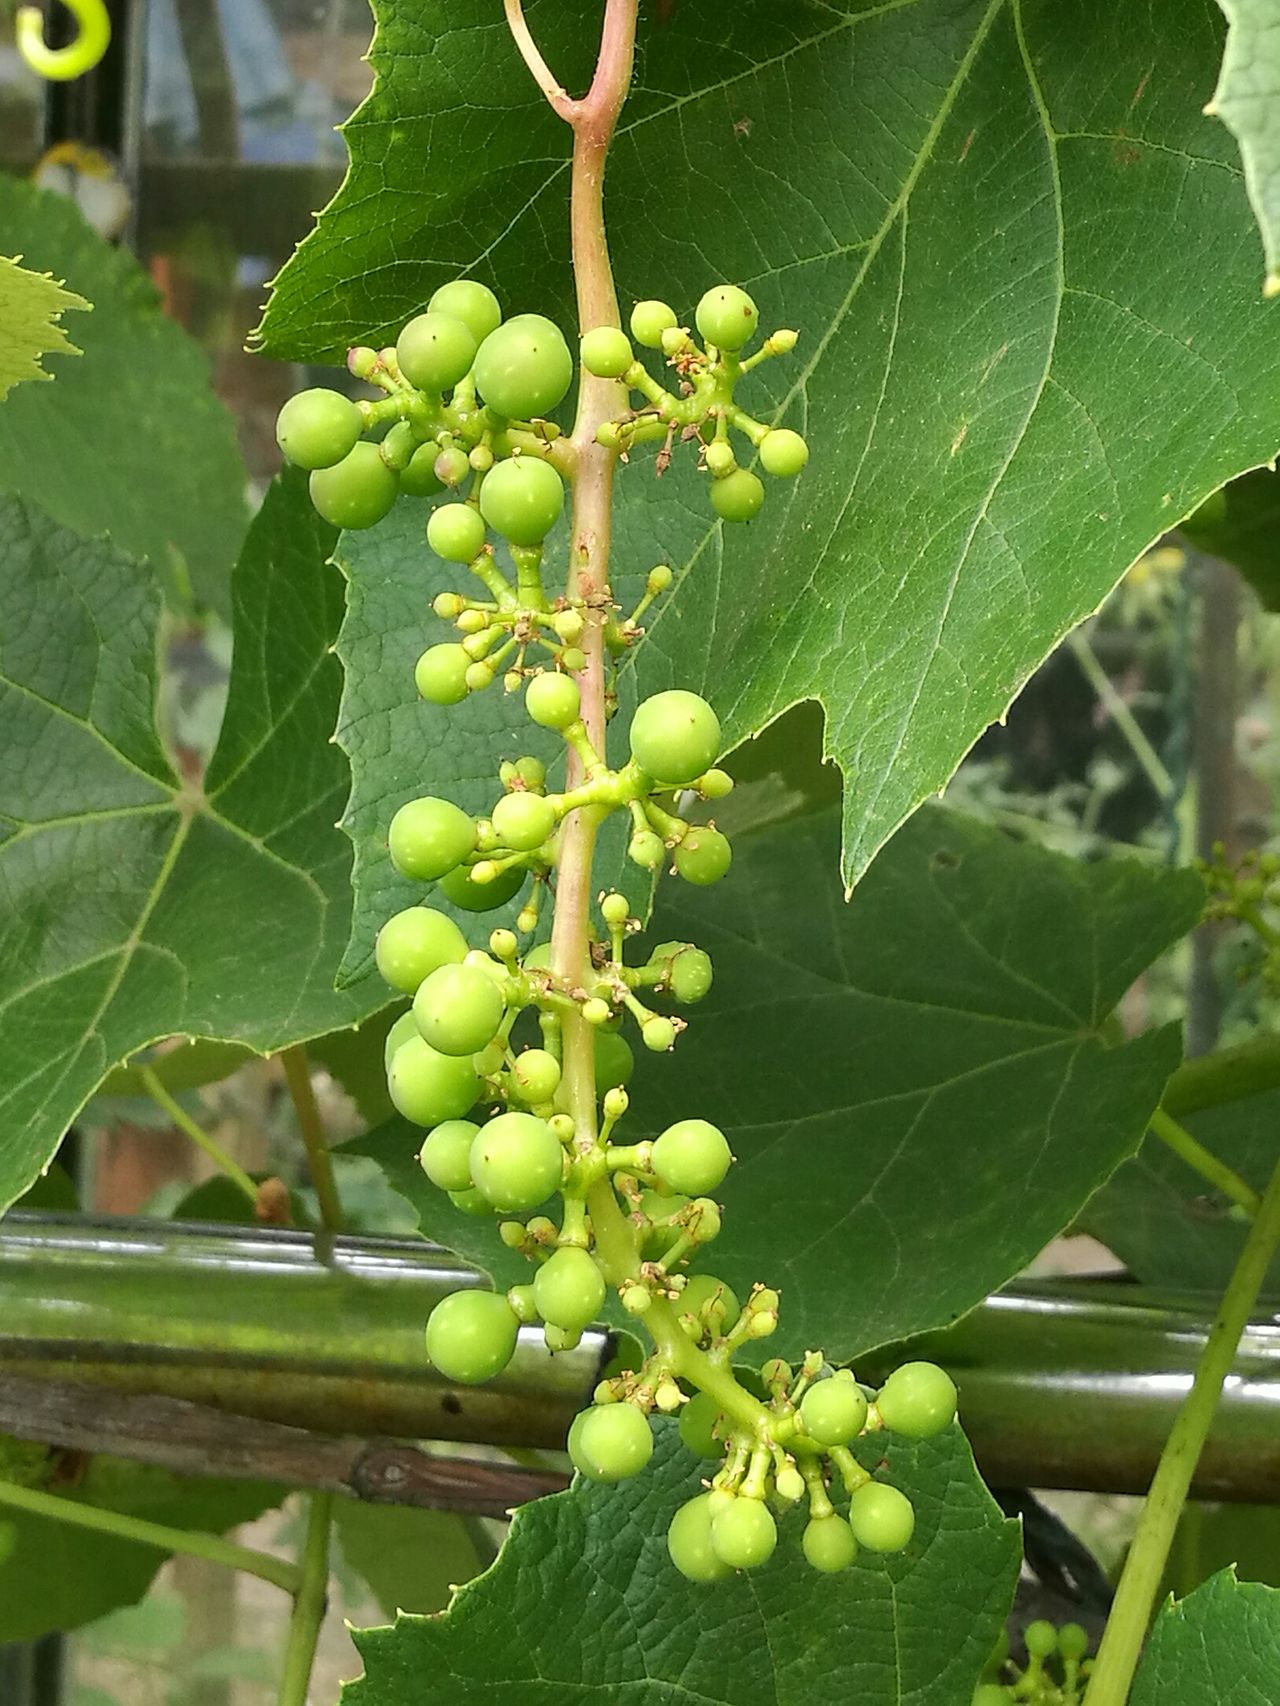 Nature_collection EyeEm Nature Lover Eyeem Collection Young Grapes